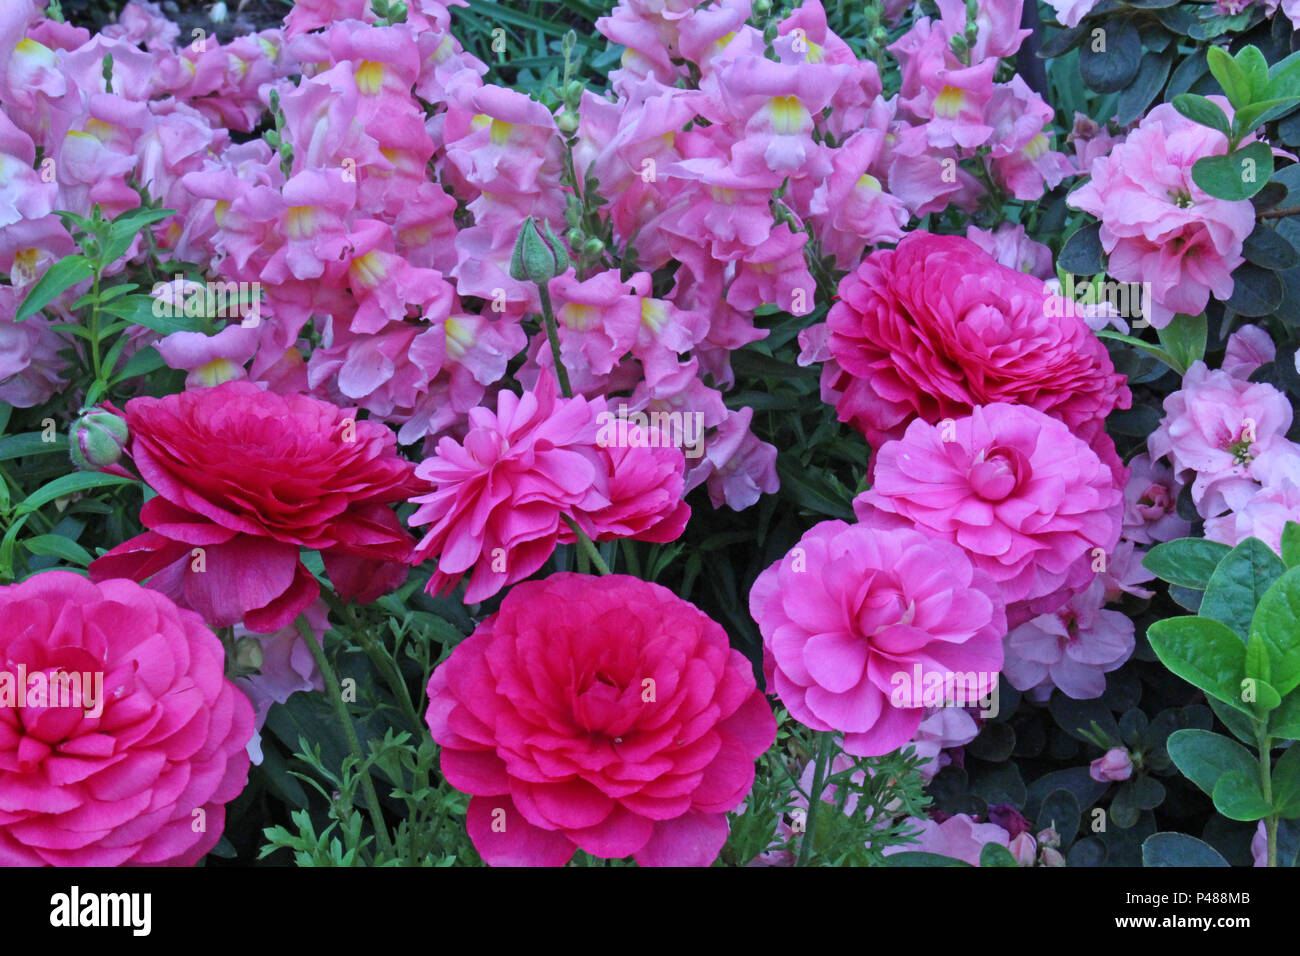 Pink red flowers in flower bed stock photos pink red flowers in close up of a beautiful flower bed filled with pink and red ranunculus and pink snapdragons izmirmasajfo